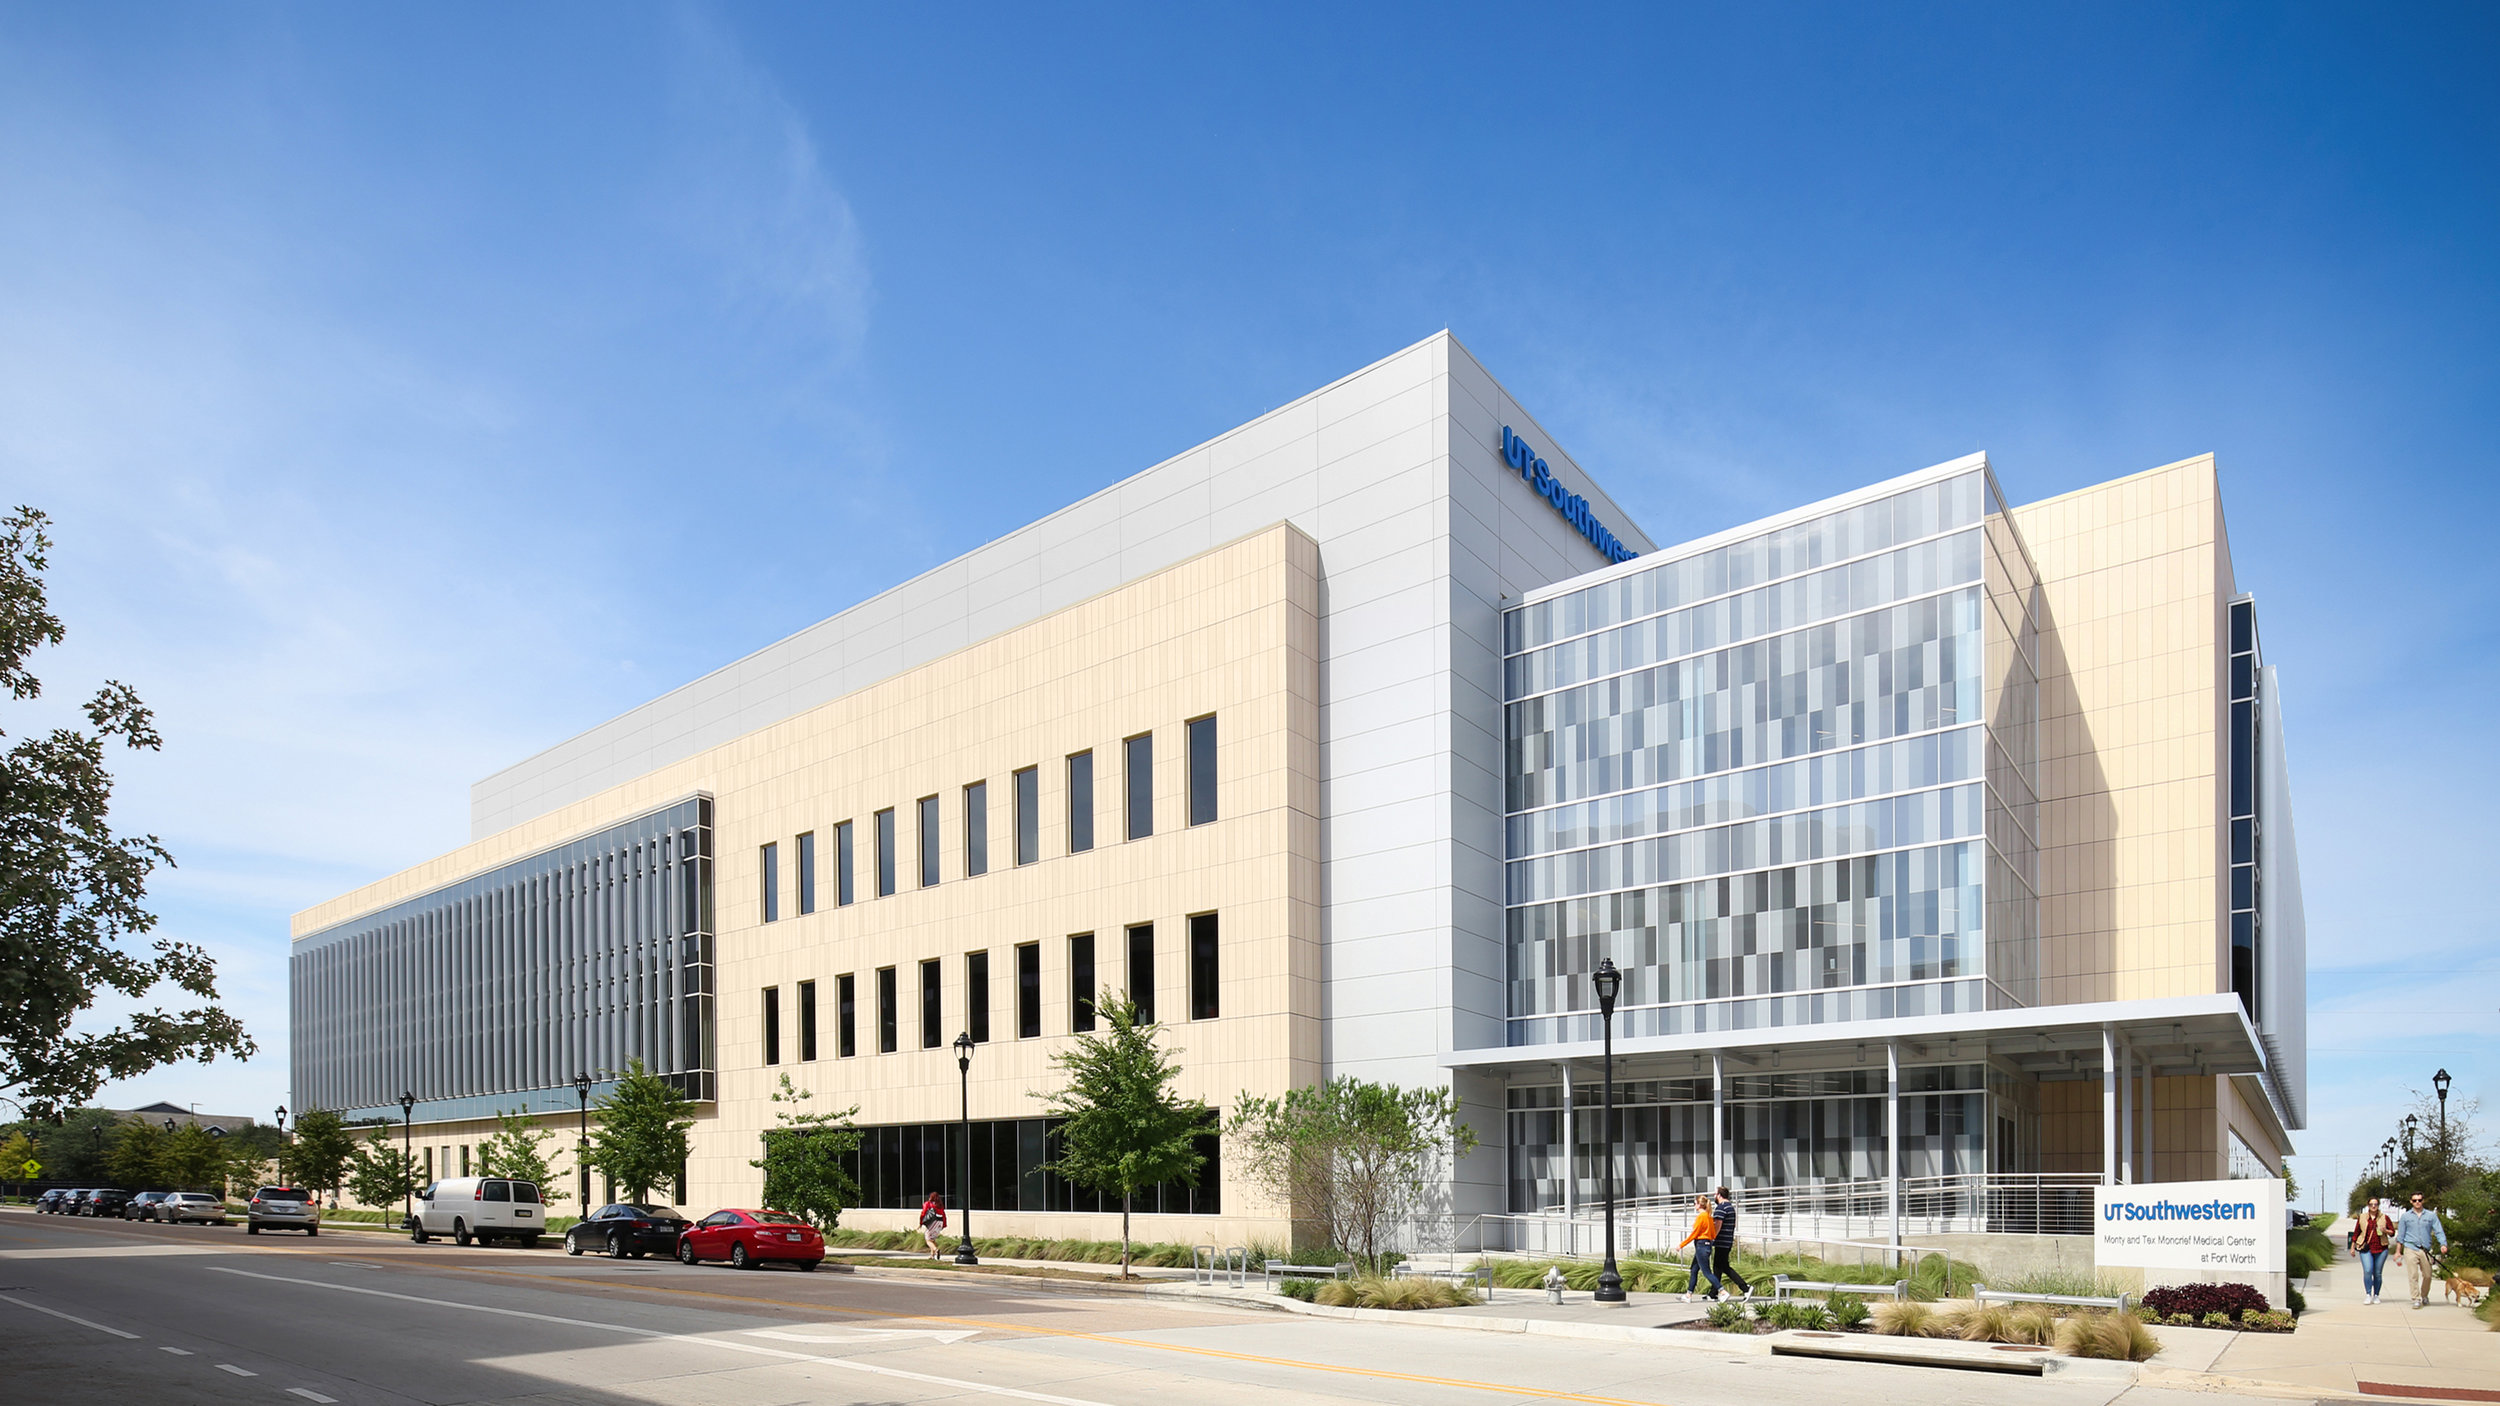 UT Southwestern    HKS Architects  Fort Worth, TX  © Jonathan Dean